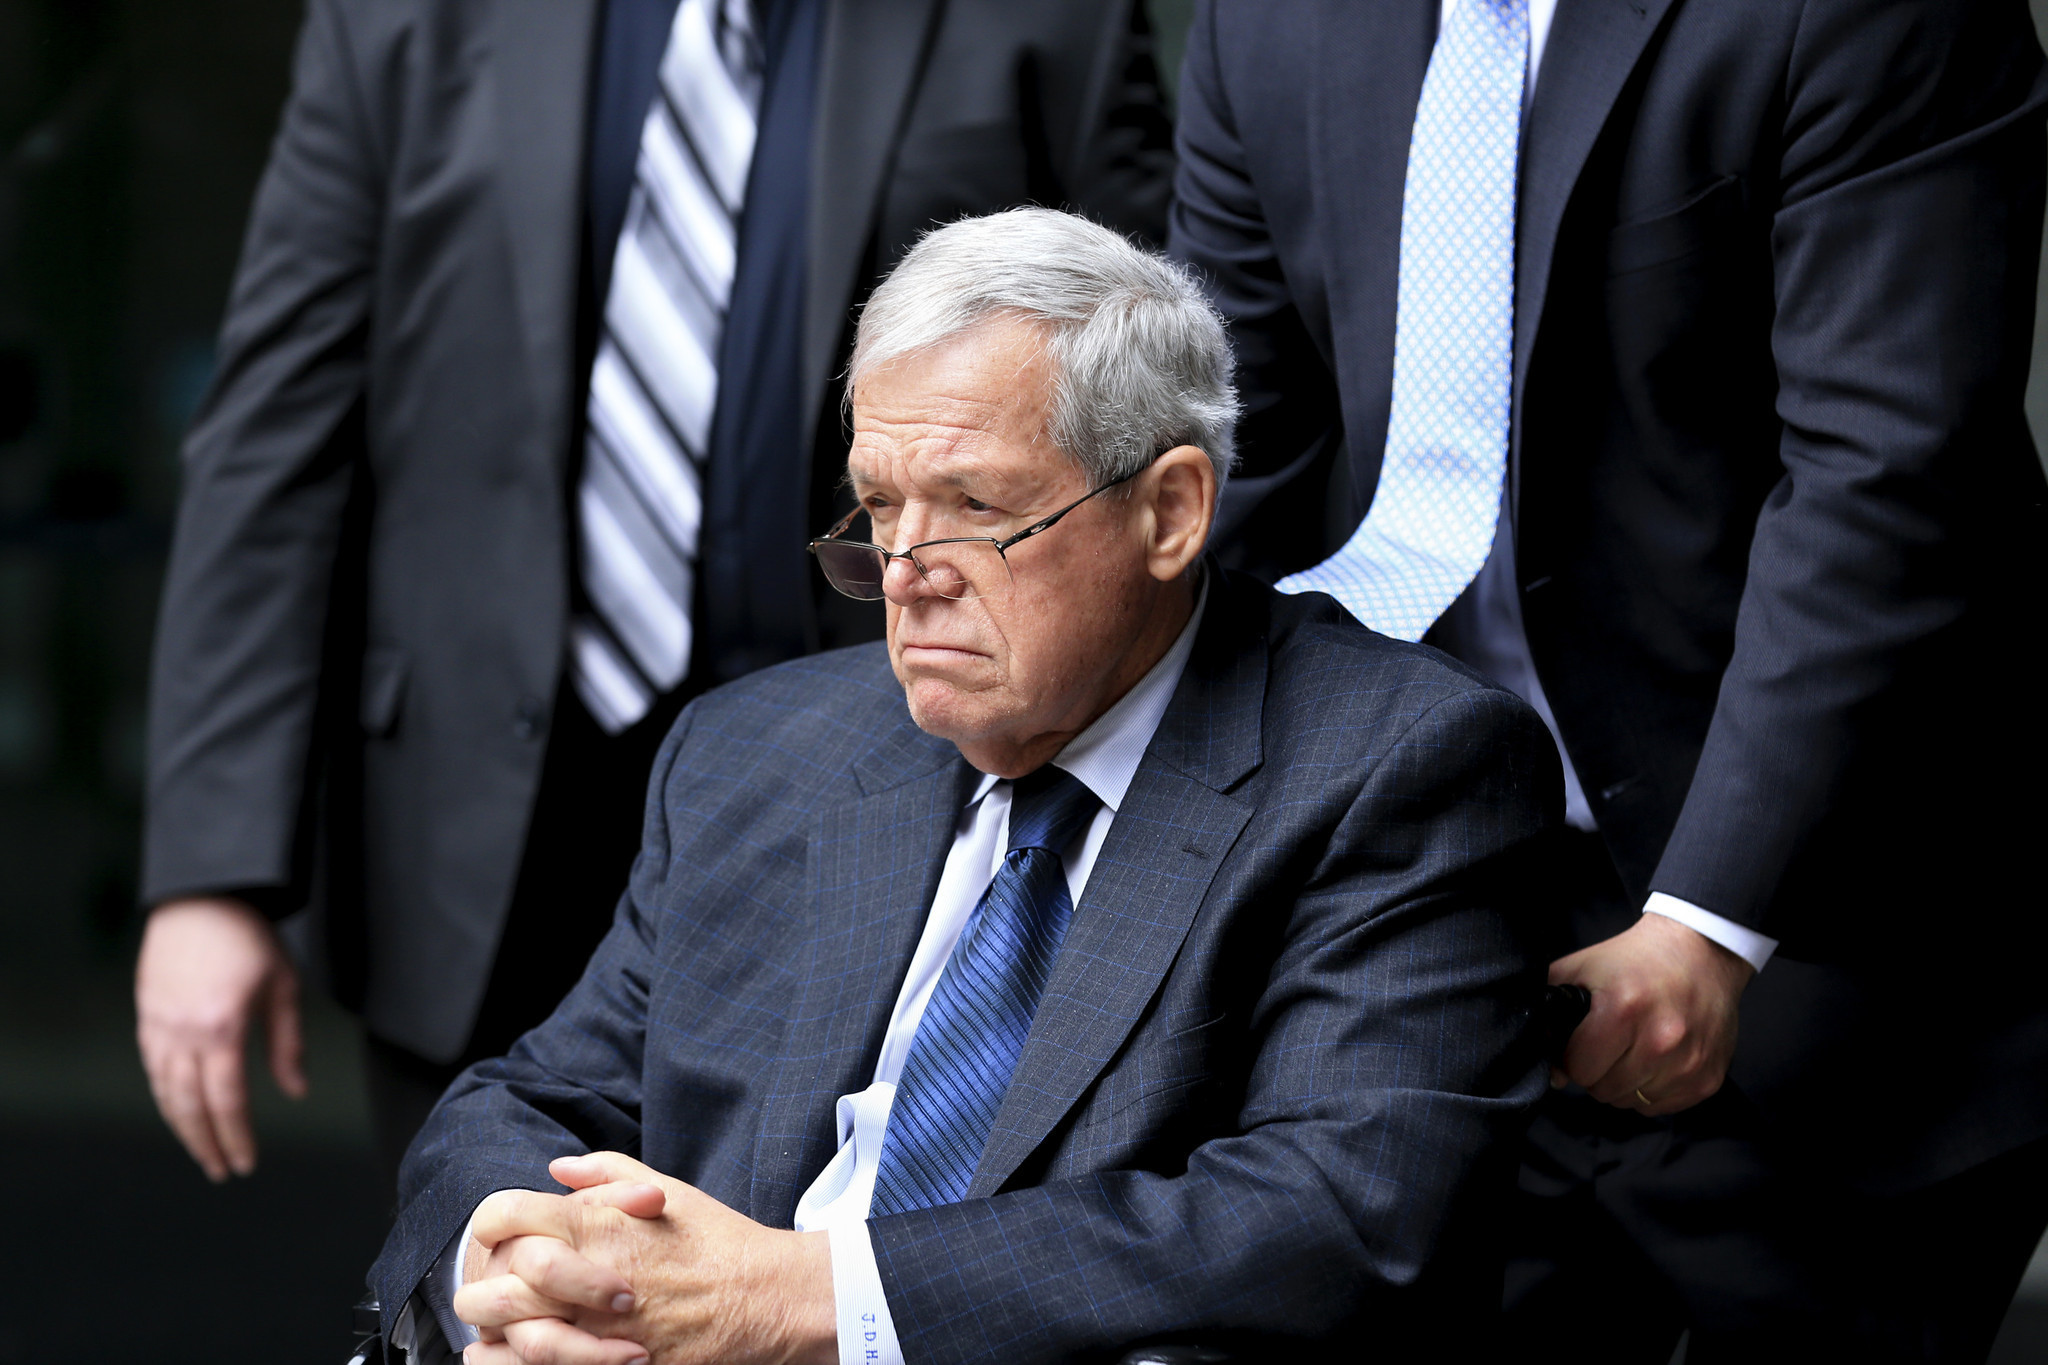 ct-dennis-hastert-lawsuit-met-20170222